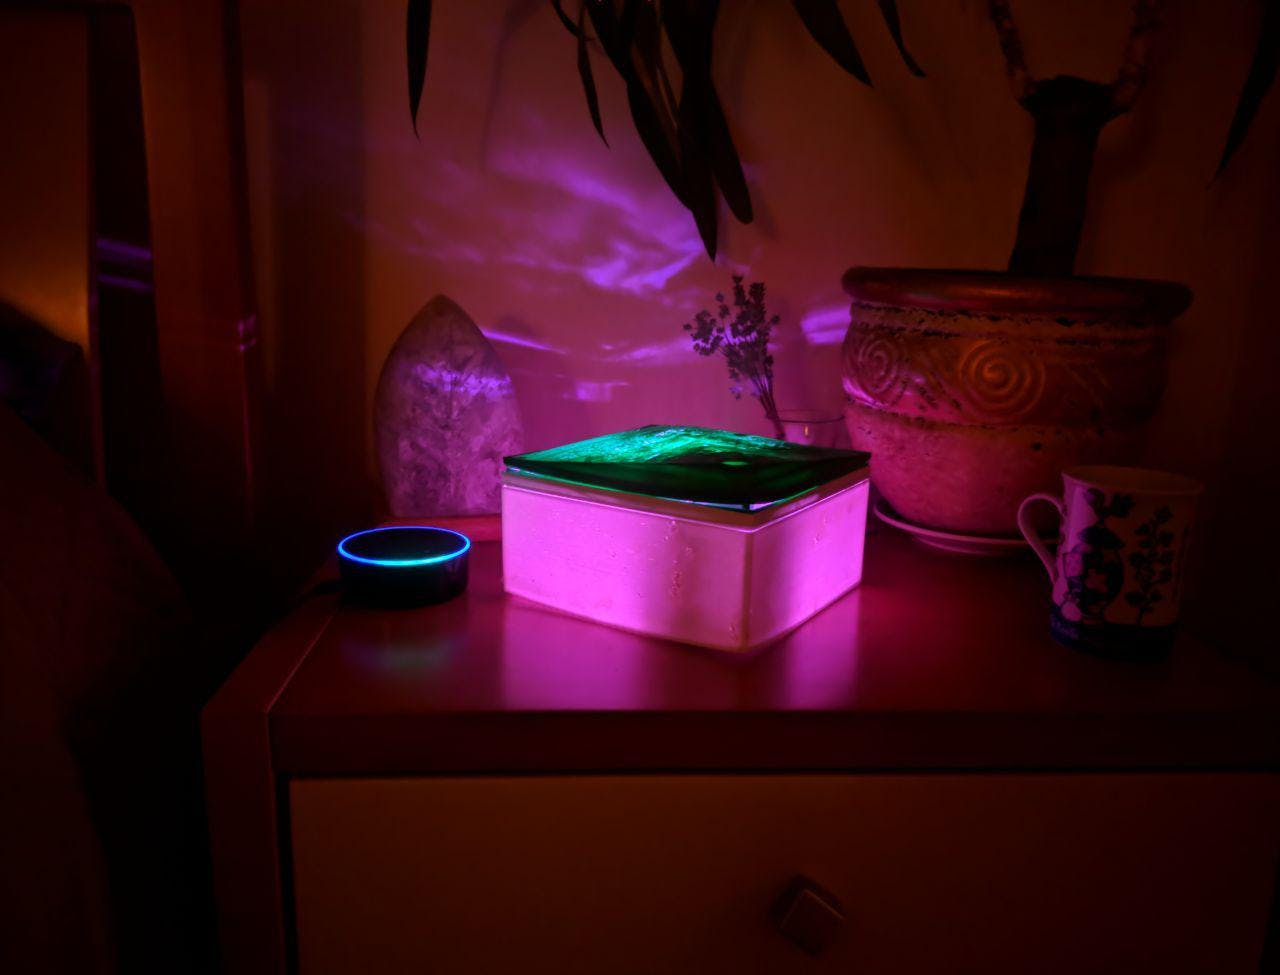 DIY Air Humidifier with Backlight Controlled by Alexa